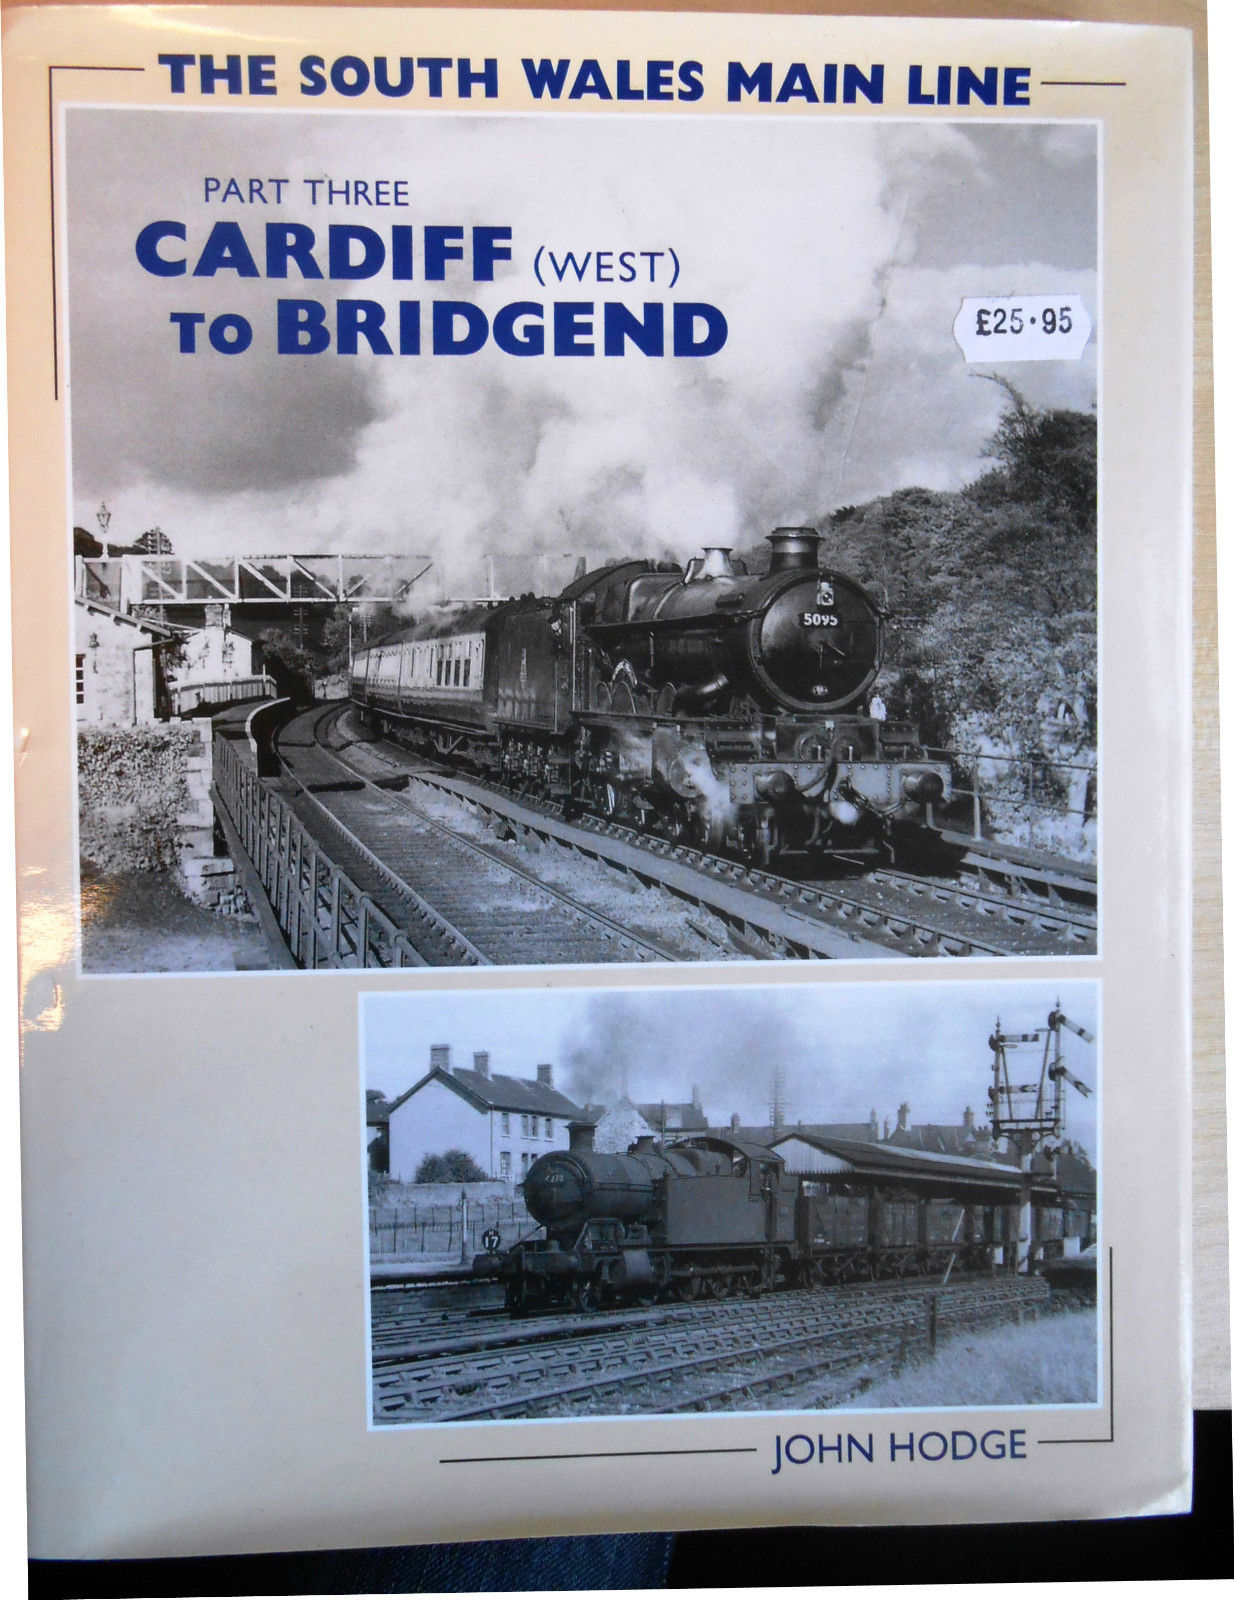 The South Wales Main Line Part Three: Cardiff (West) to Bridgend Llanharan - The Vale of Rheidol Railway